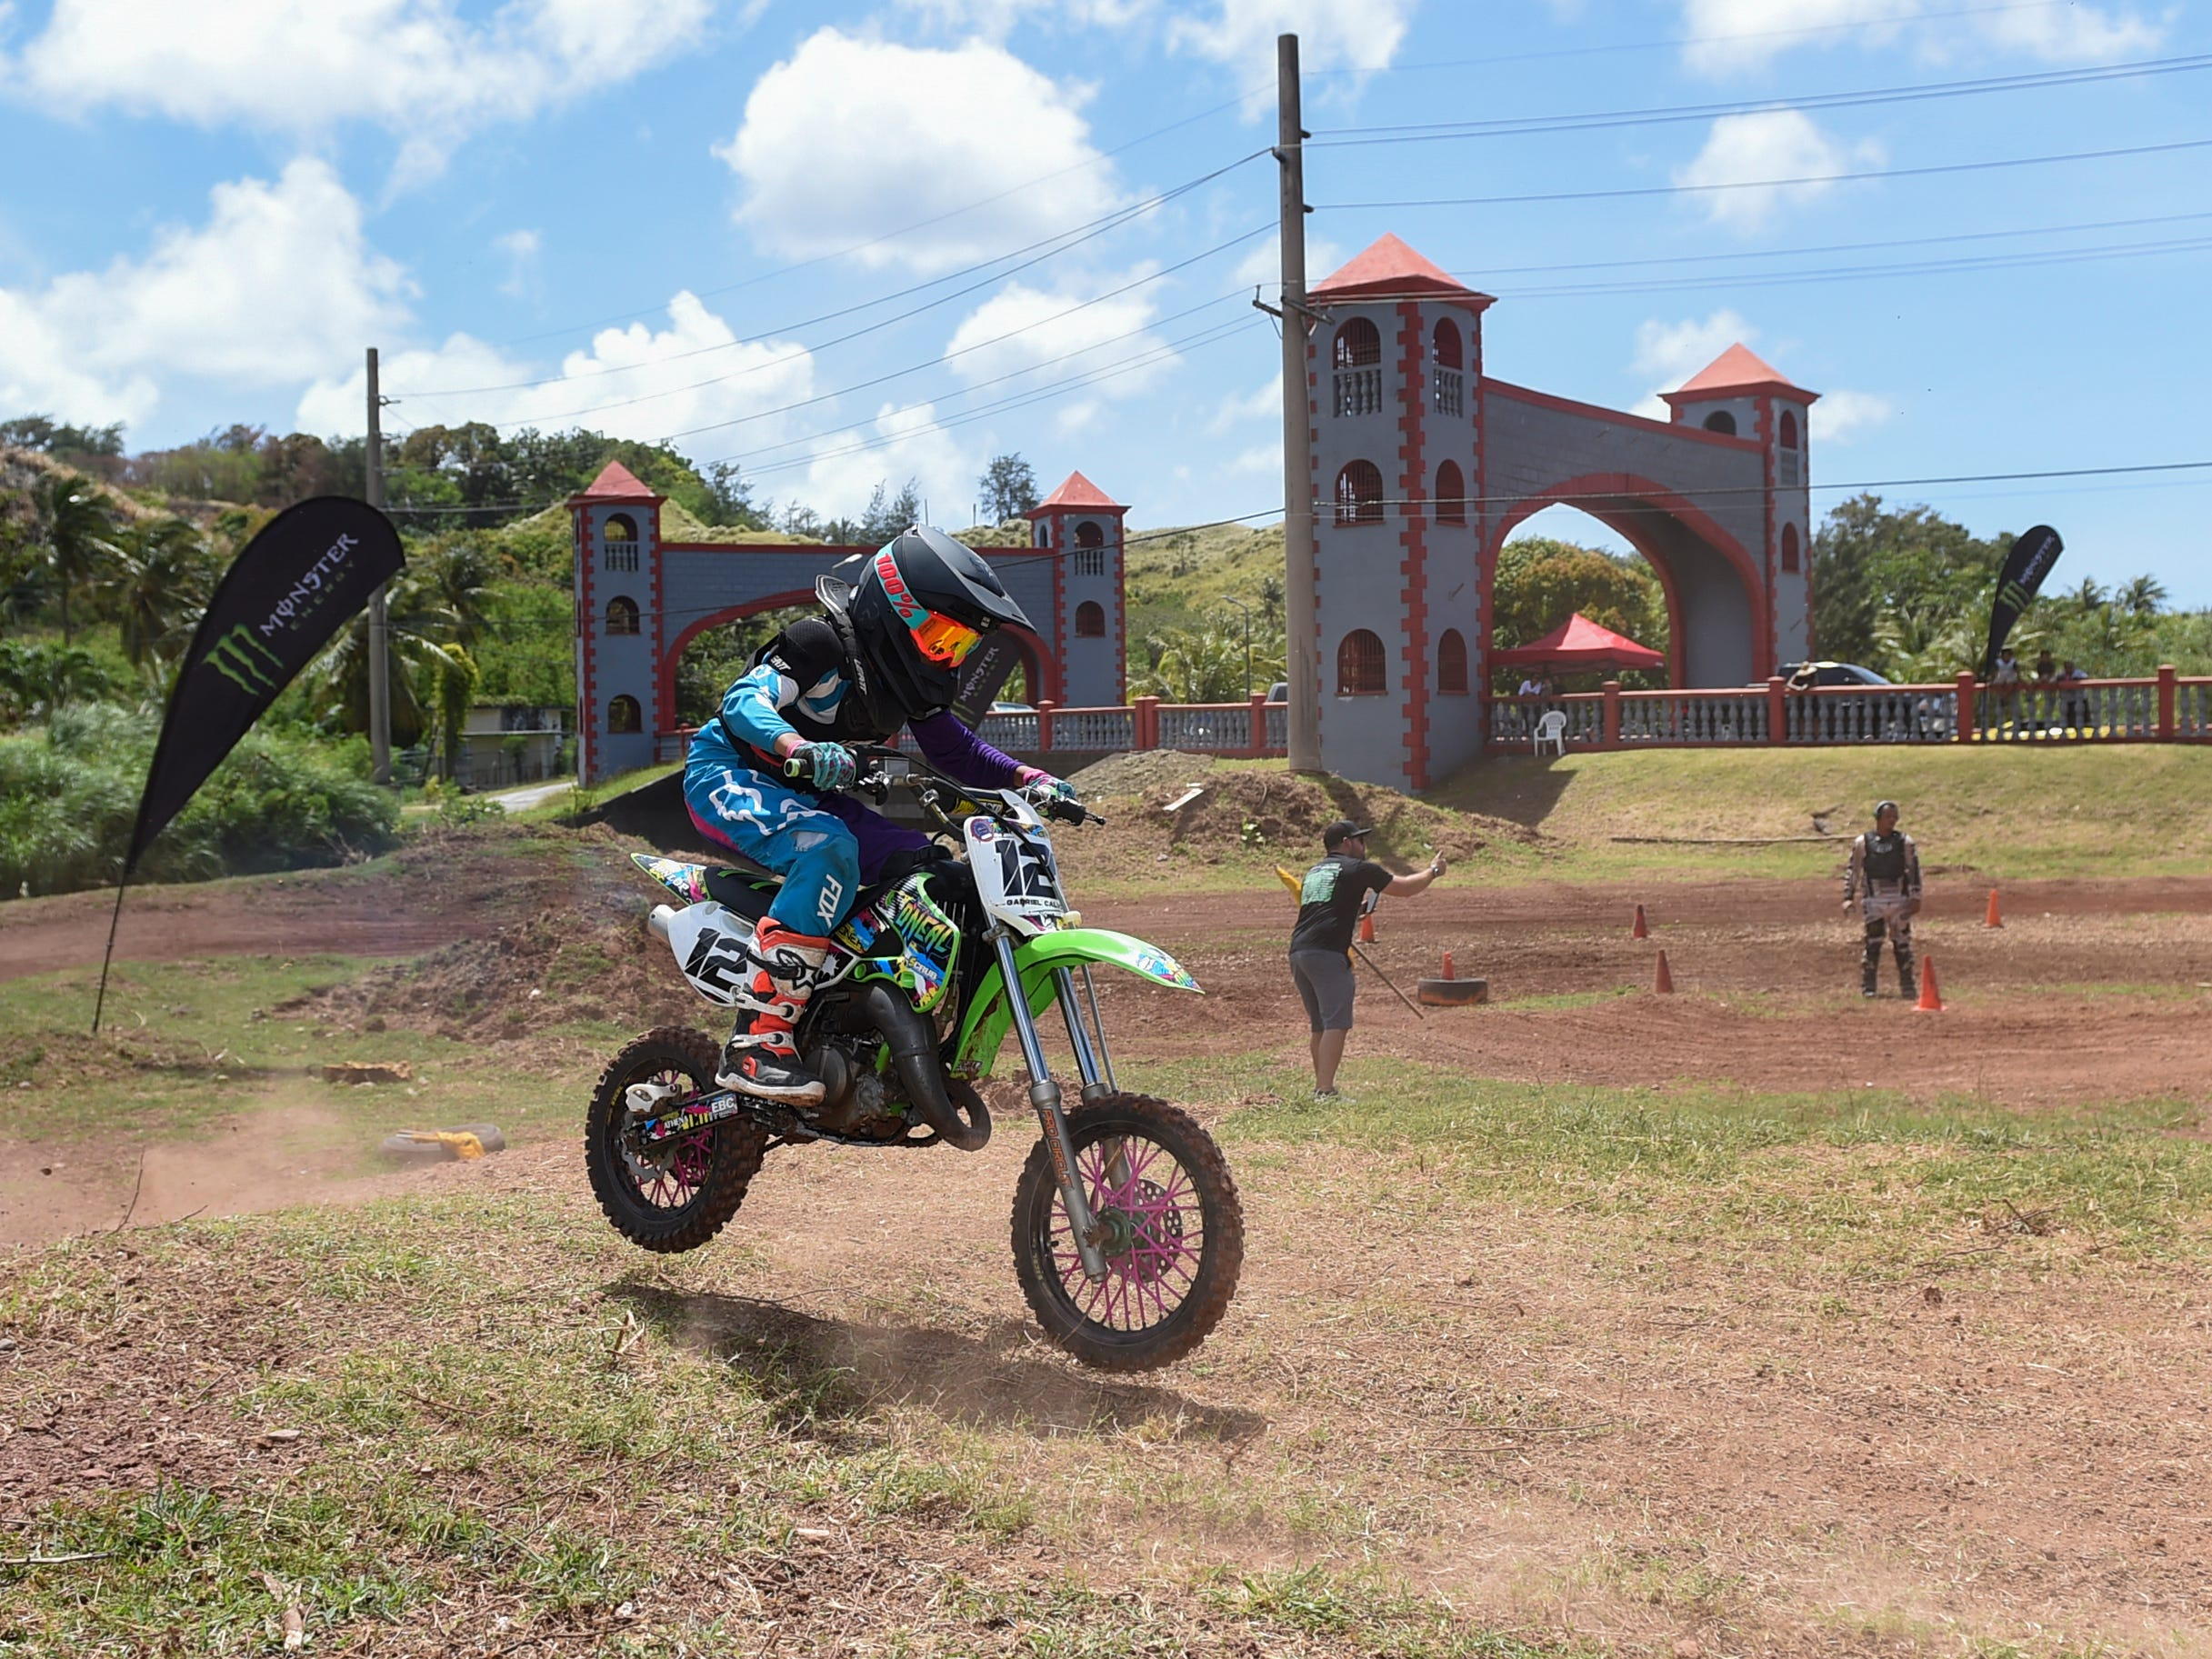 Motocross competitor Gabriel Calvo races in a 65cc kids minibike class course during the Guam History and Chamorro Heritage Day Festival 2019 at Umatac Bay Park, March 10, 2019.